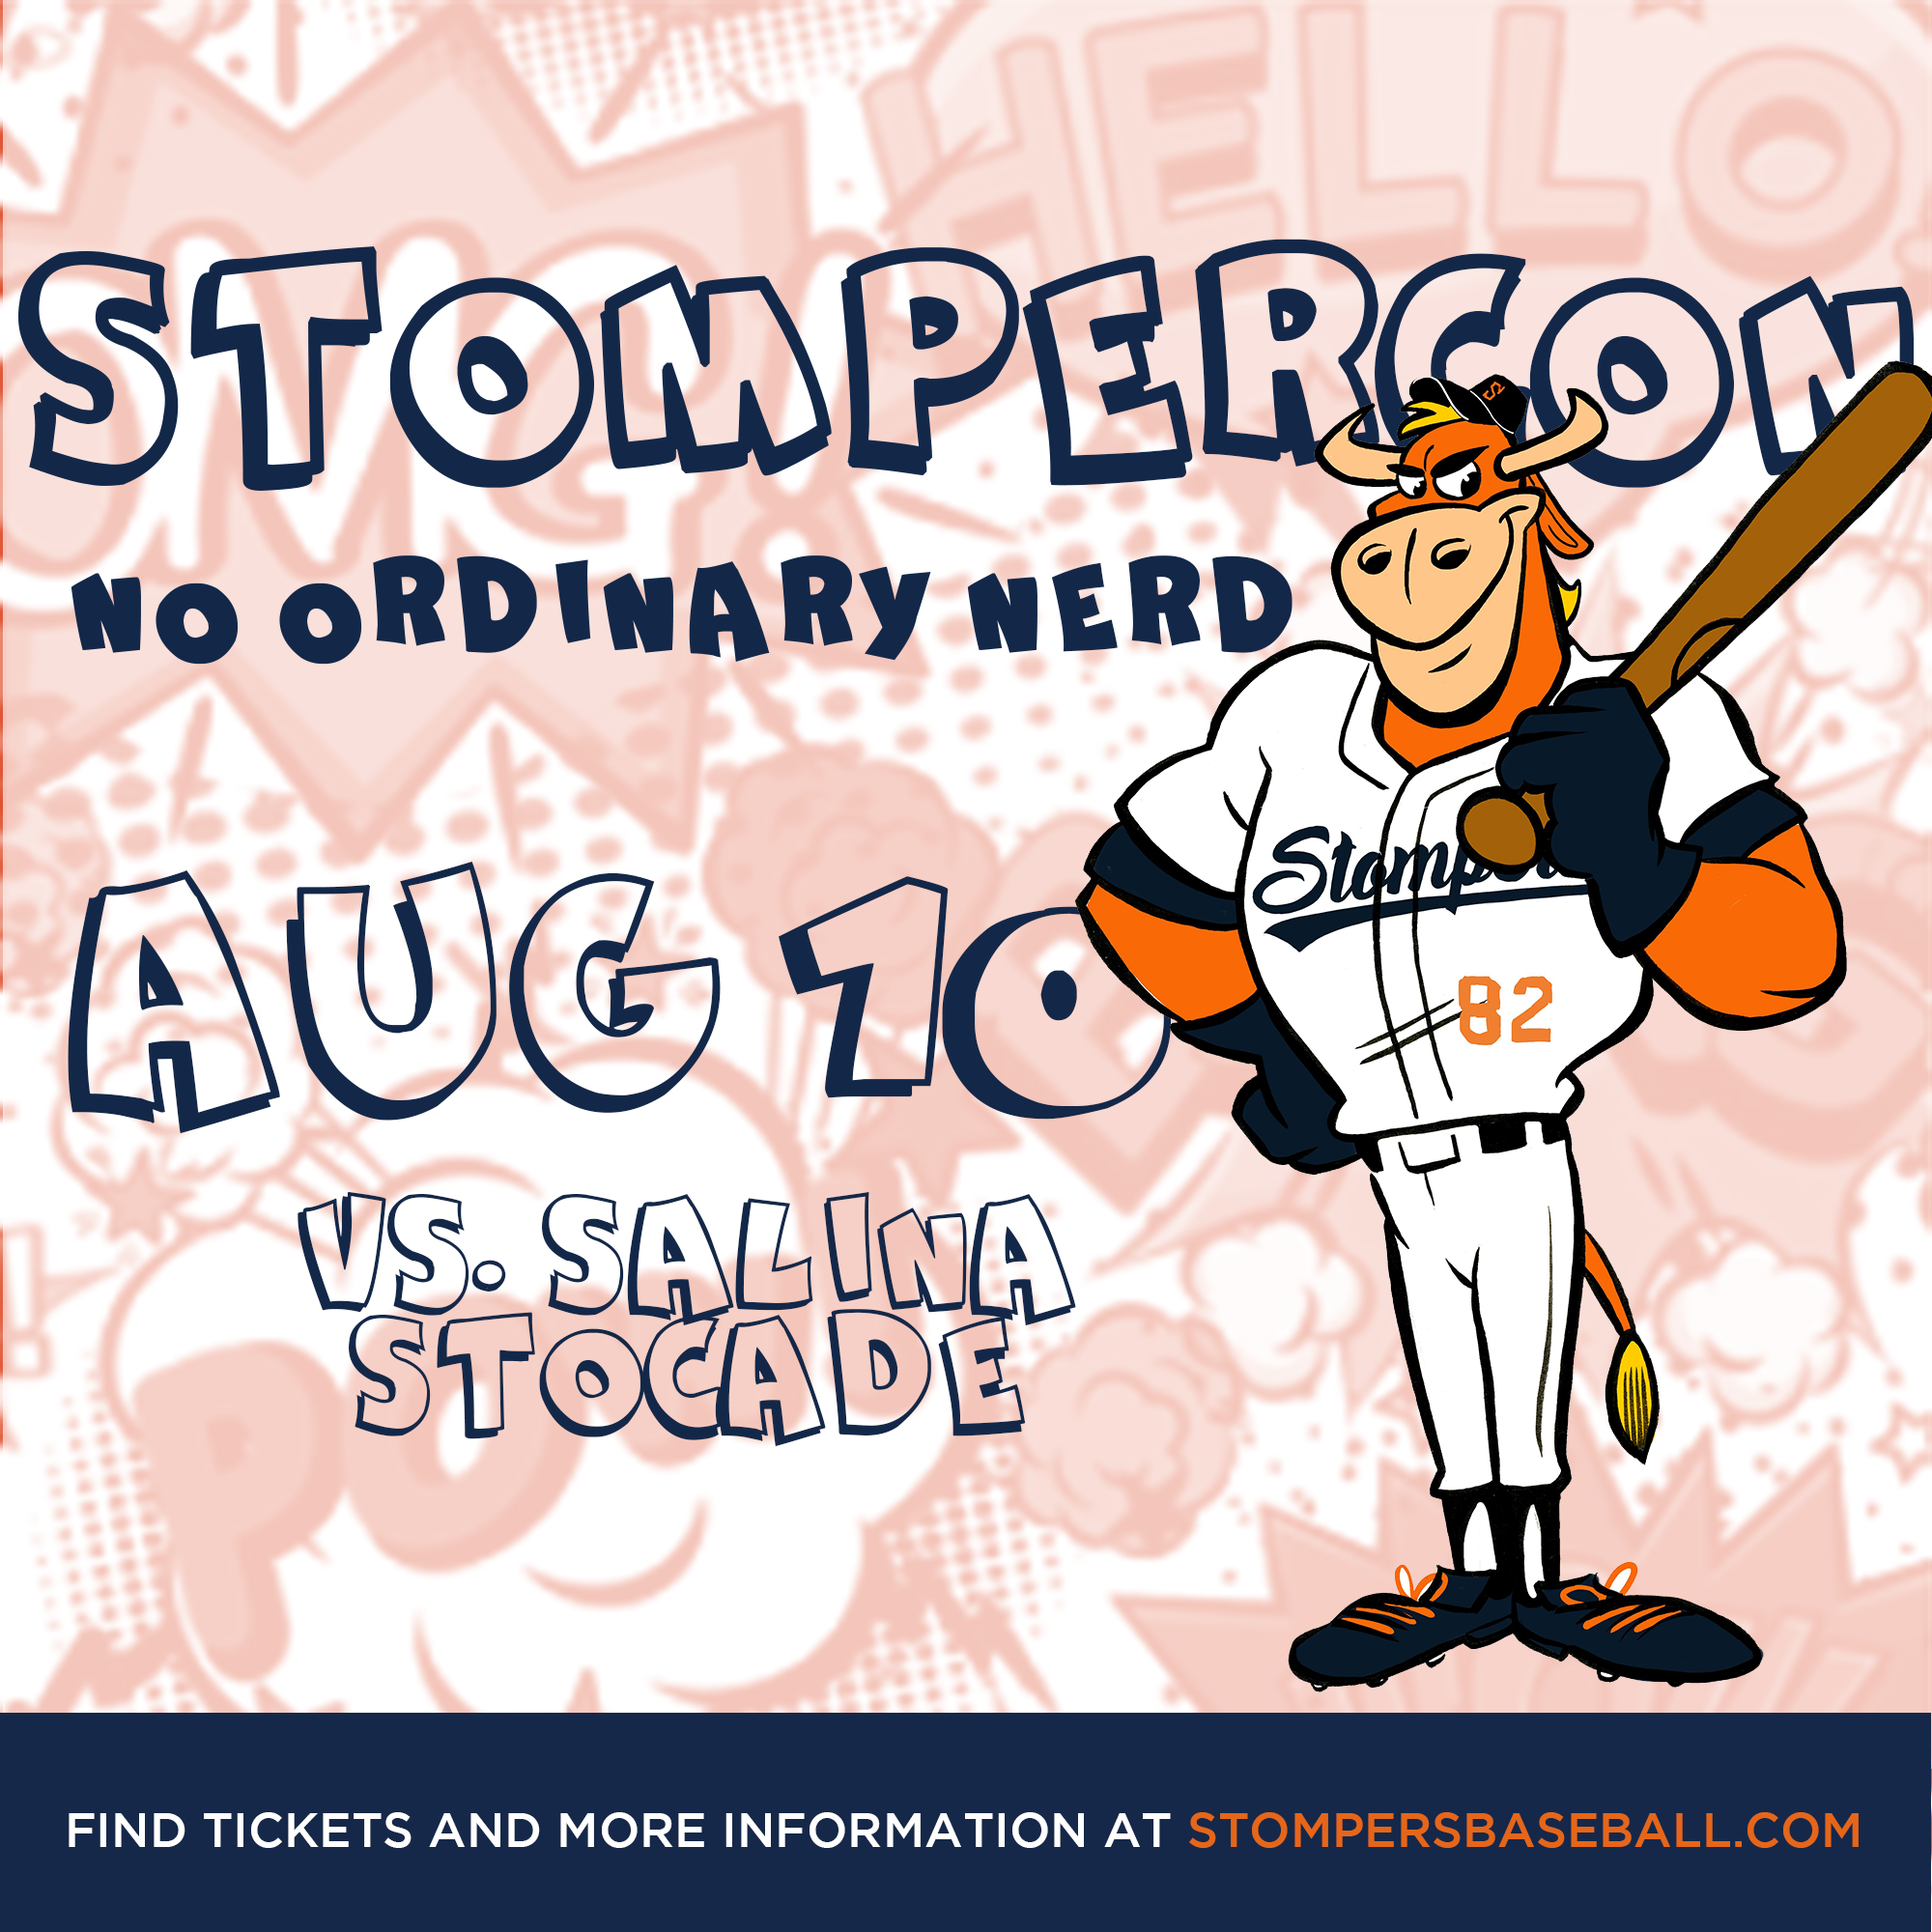 Aug 10: Stompercon - STOMPERCON presented by No Ordinary nNerd! Come out to the ballpark and get your nerd on with No Ordinary Nerd!